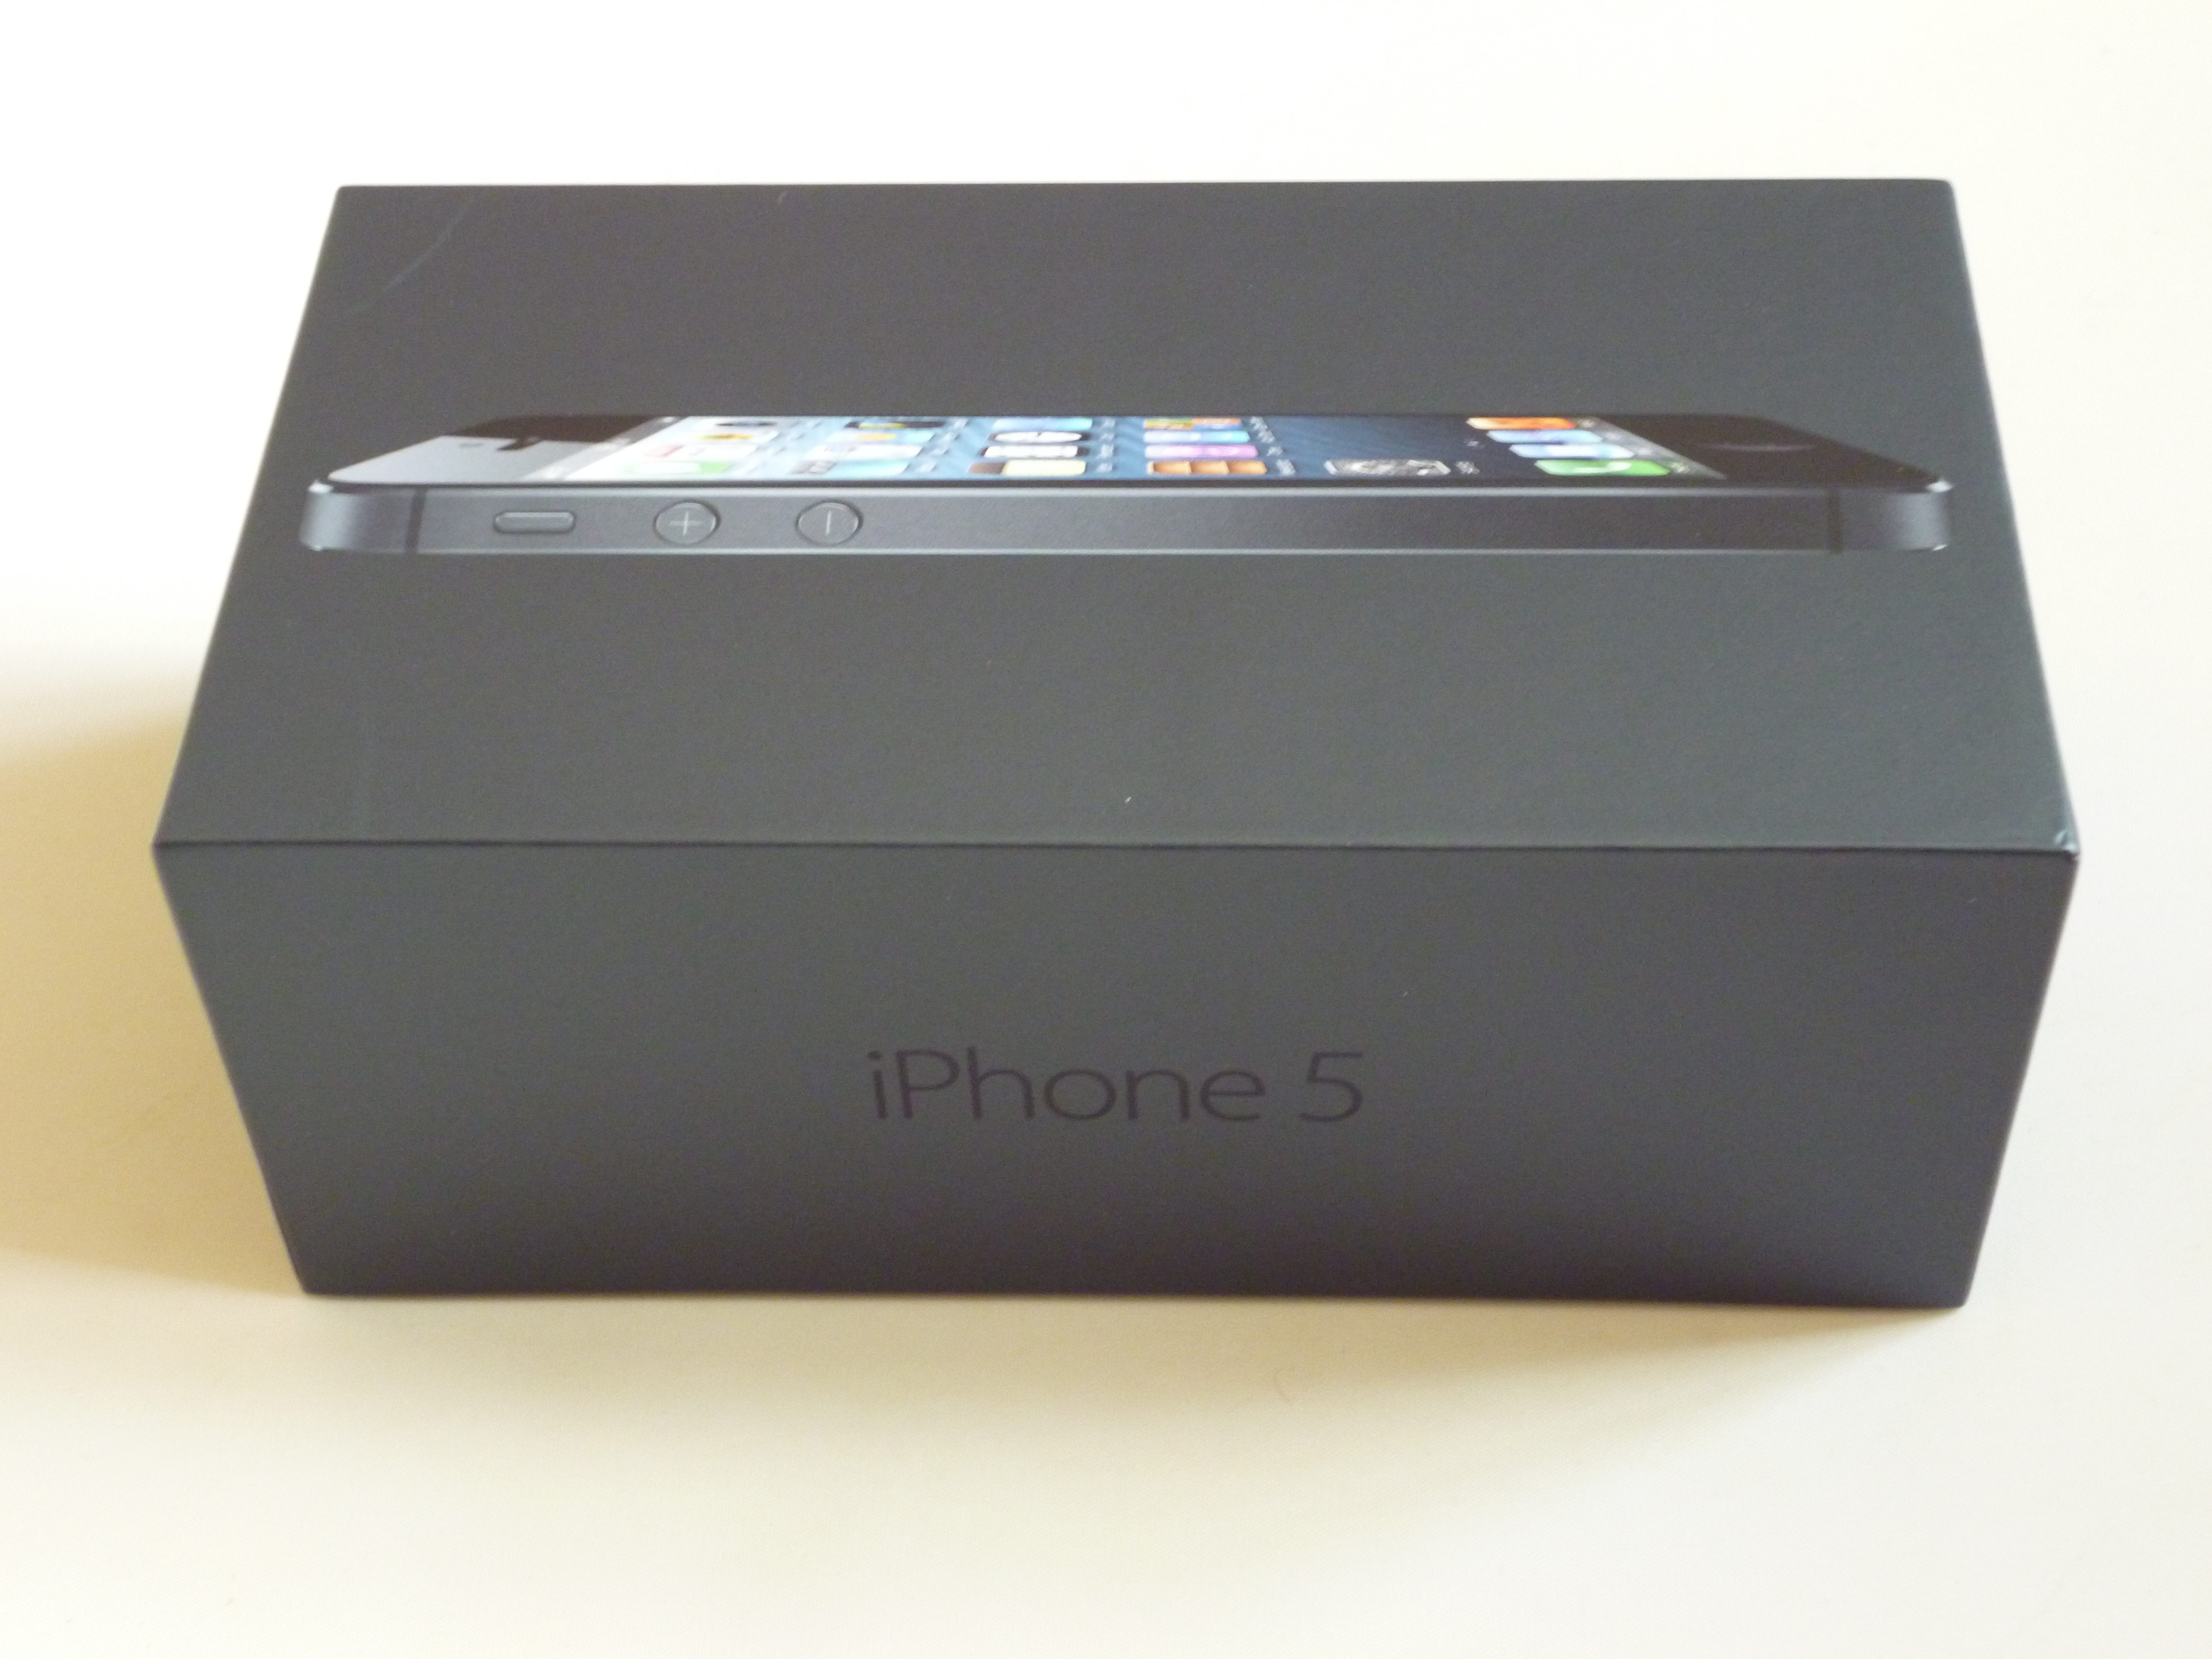 Apple iPhone 5. Itu2019s Here. Oh Yes! Unboxing Photos. : TechBeach